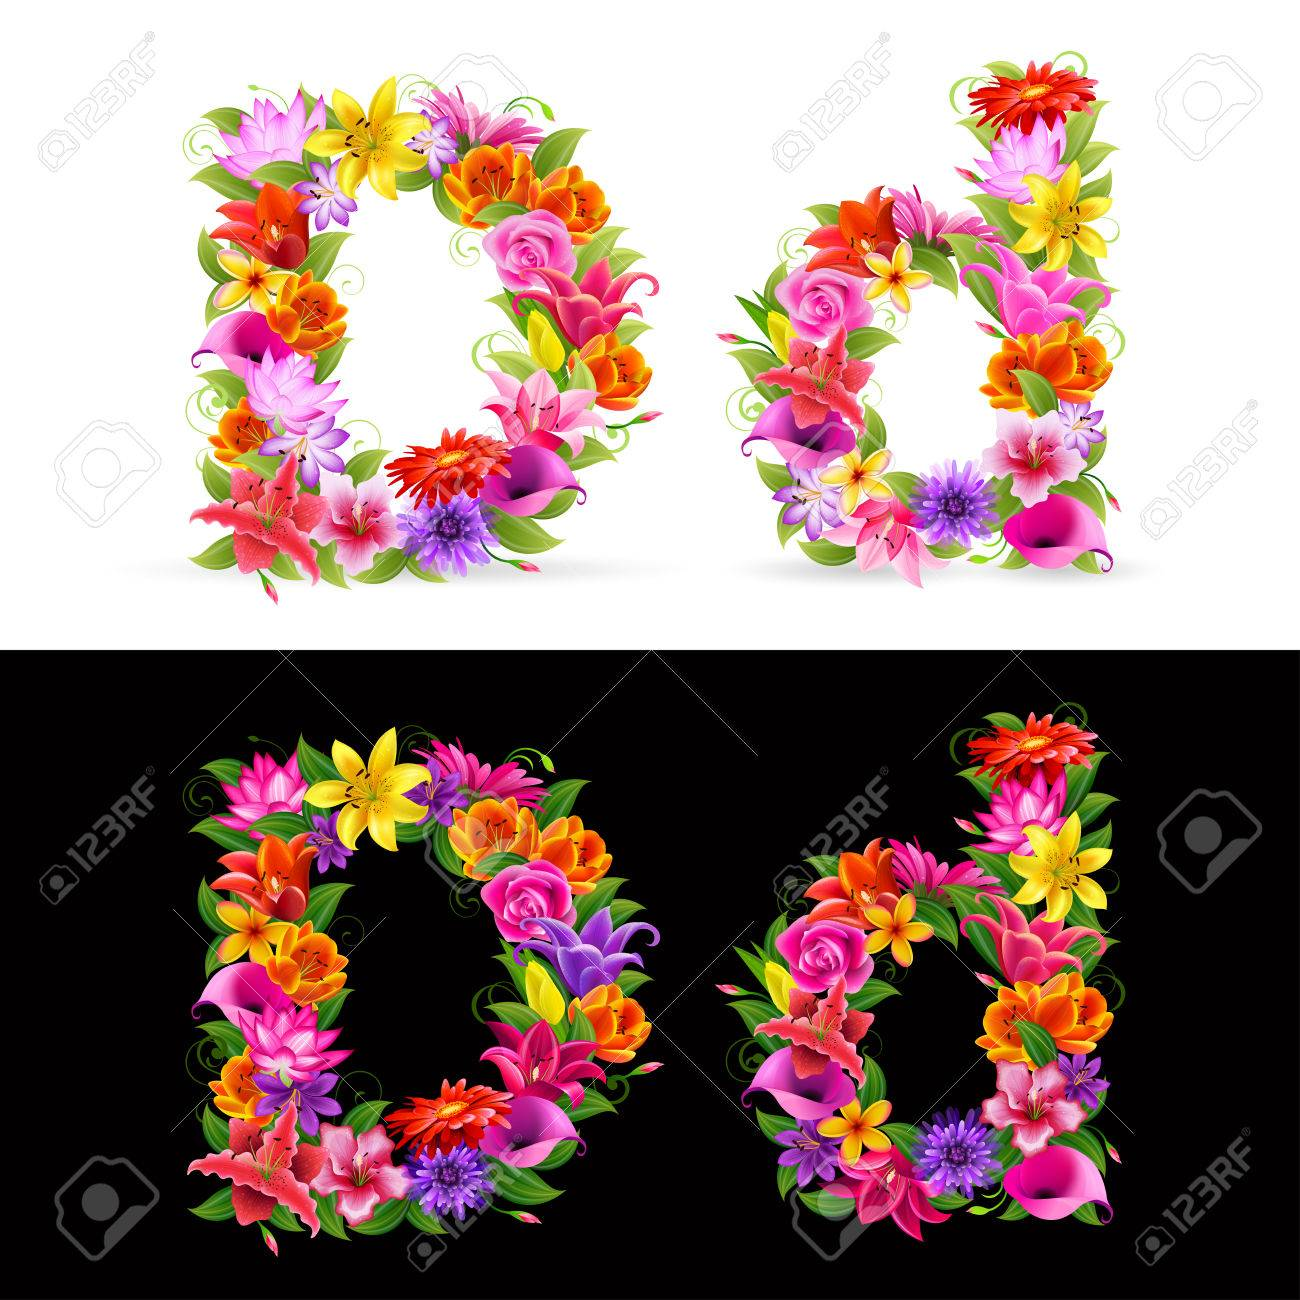 D, colorful flower font on white and black background. Stock Vector - 8710206